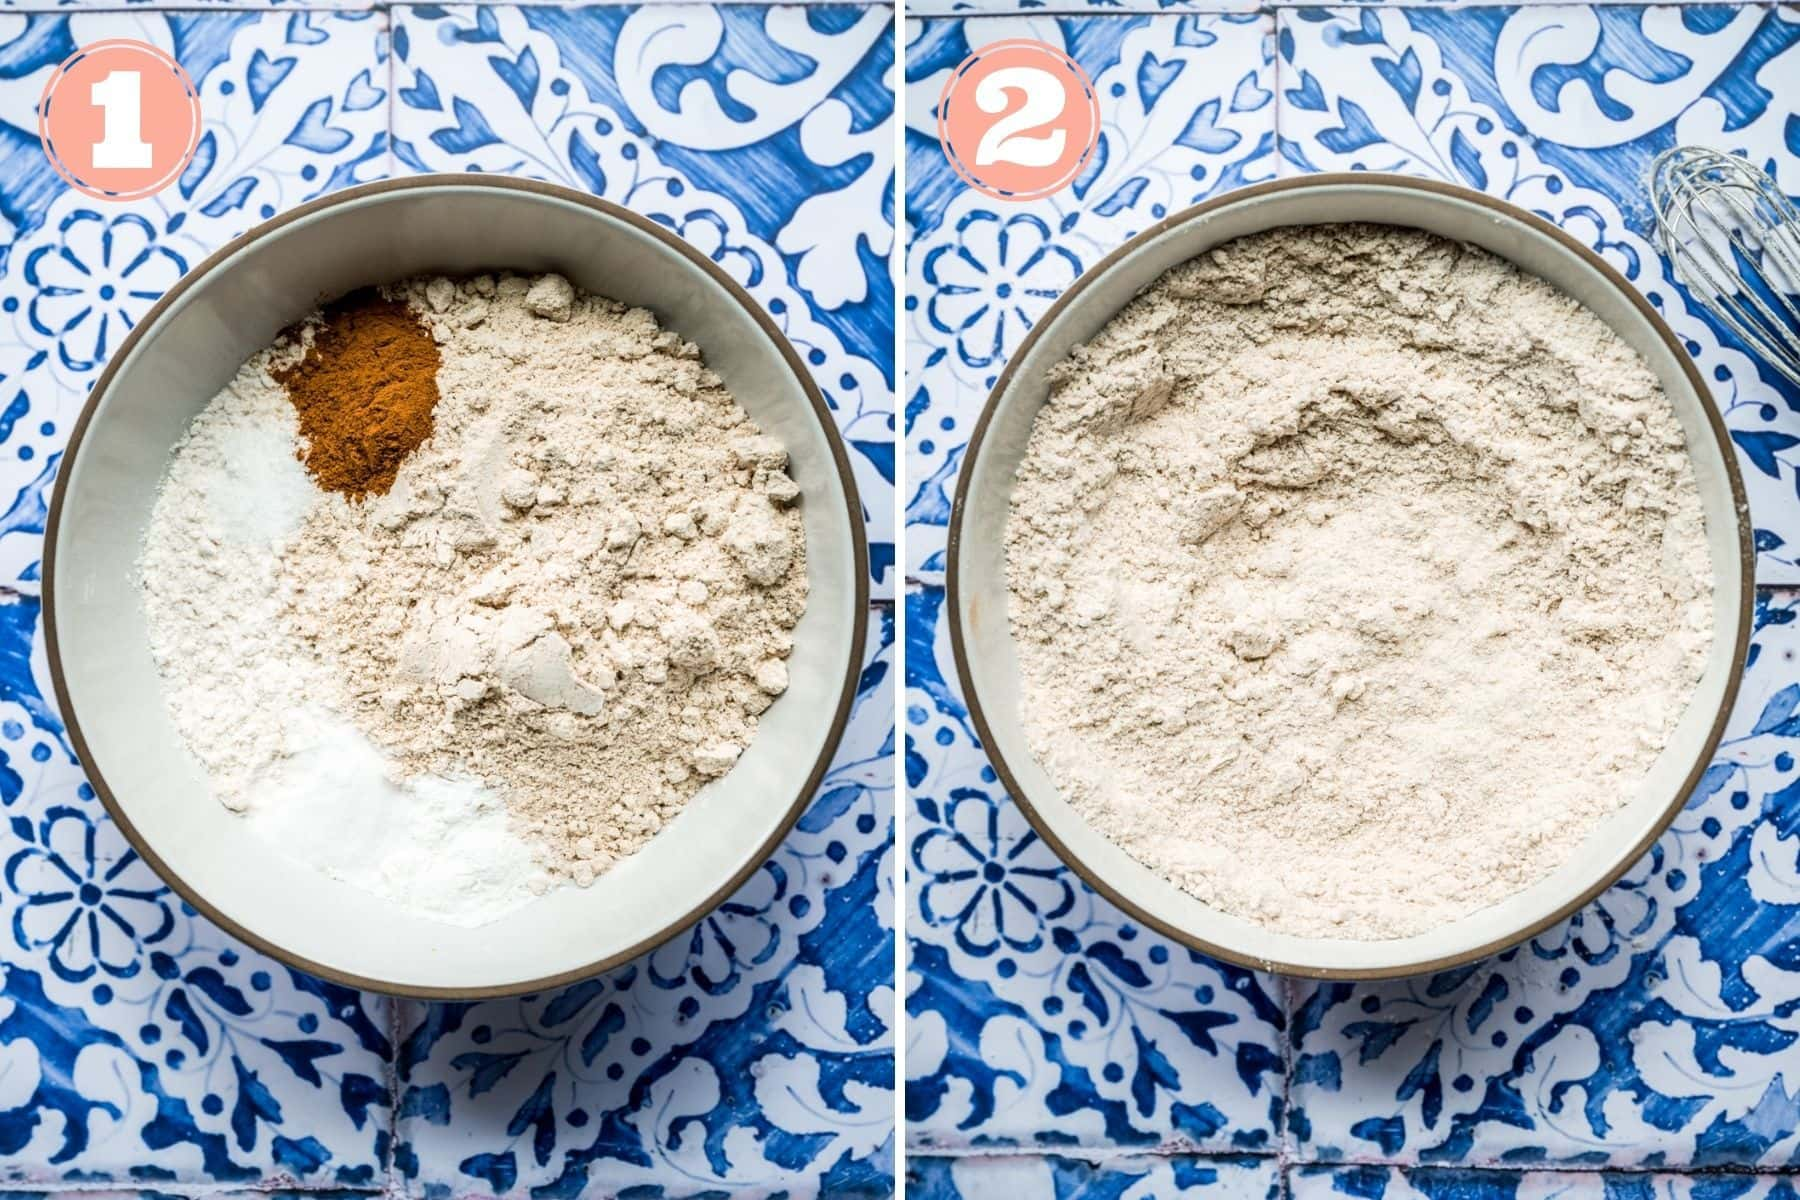 before and after mixing together dry ingredients for blueberry muffins in bowl.